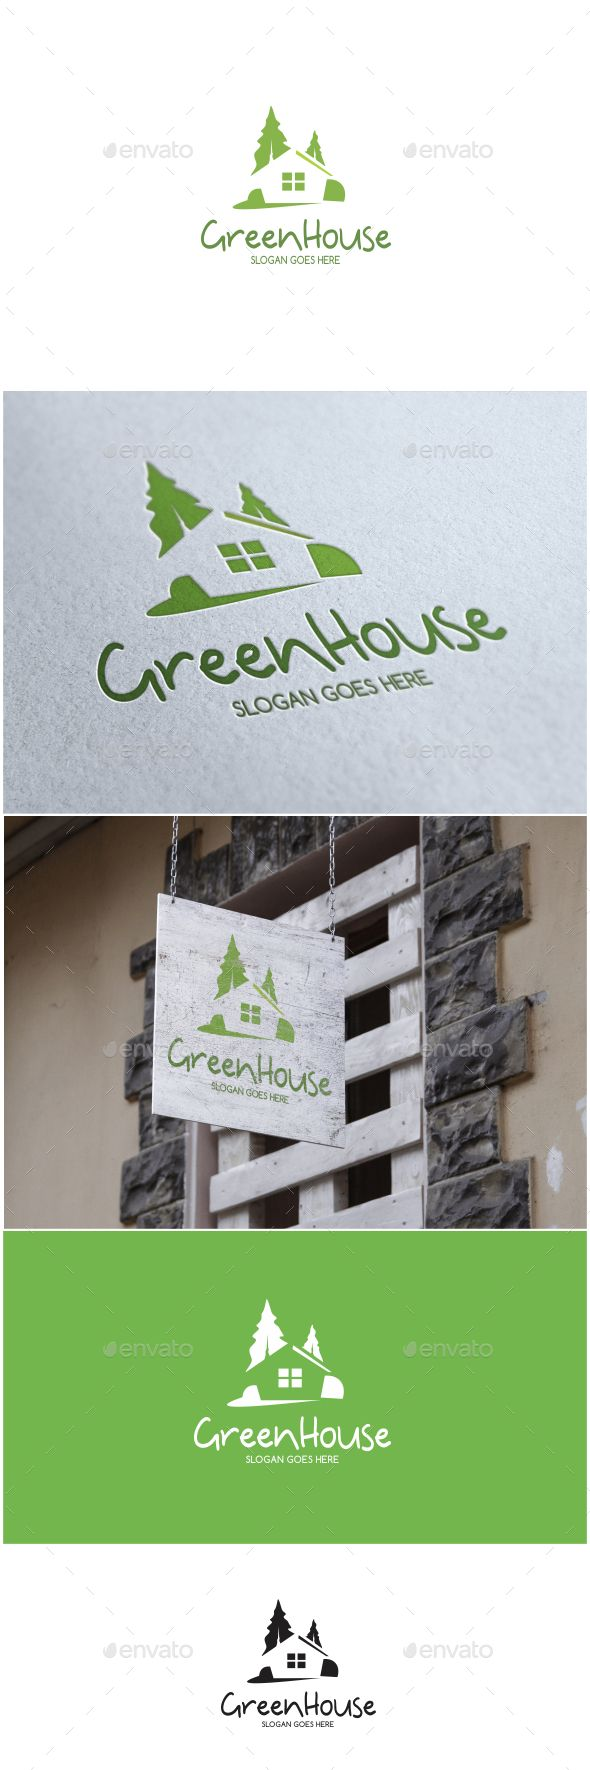 Green House Logo by MS_designer Green House Logo -AI and EPS file -CMYK mode -100% vector and resizable -Easy to edit color and text -Green House Logo(Color) -G